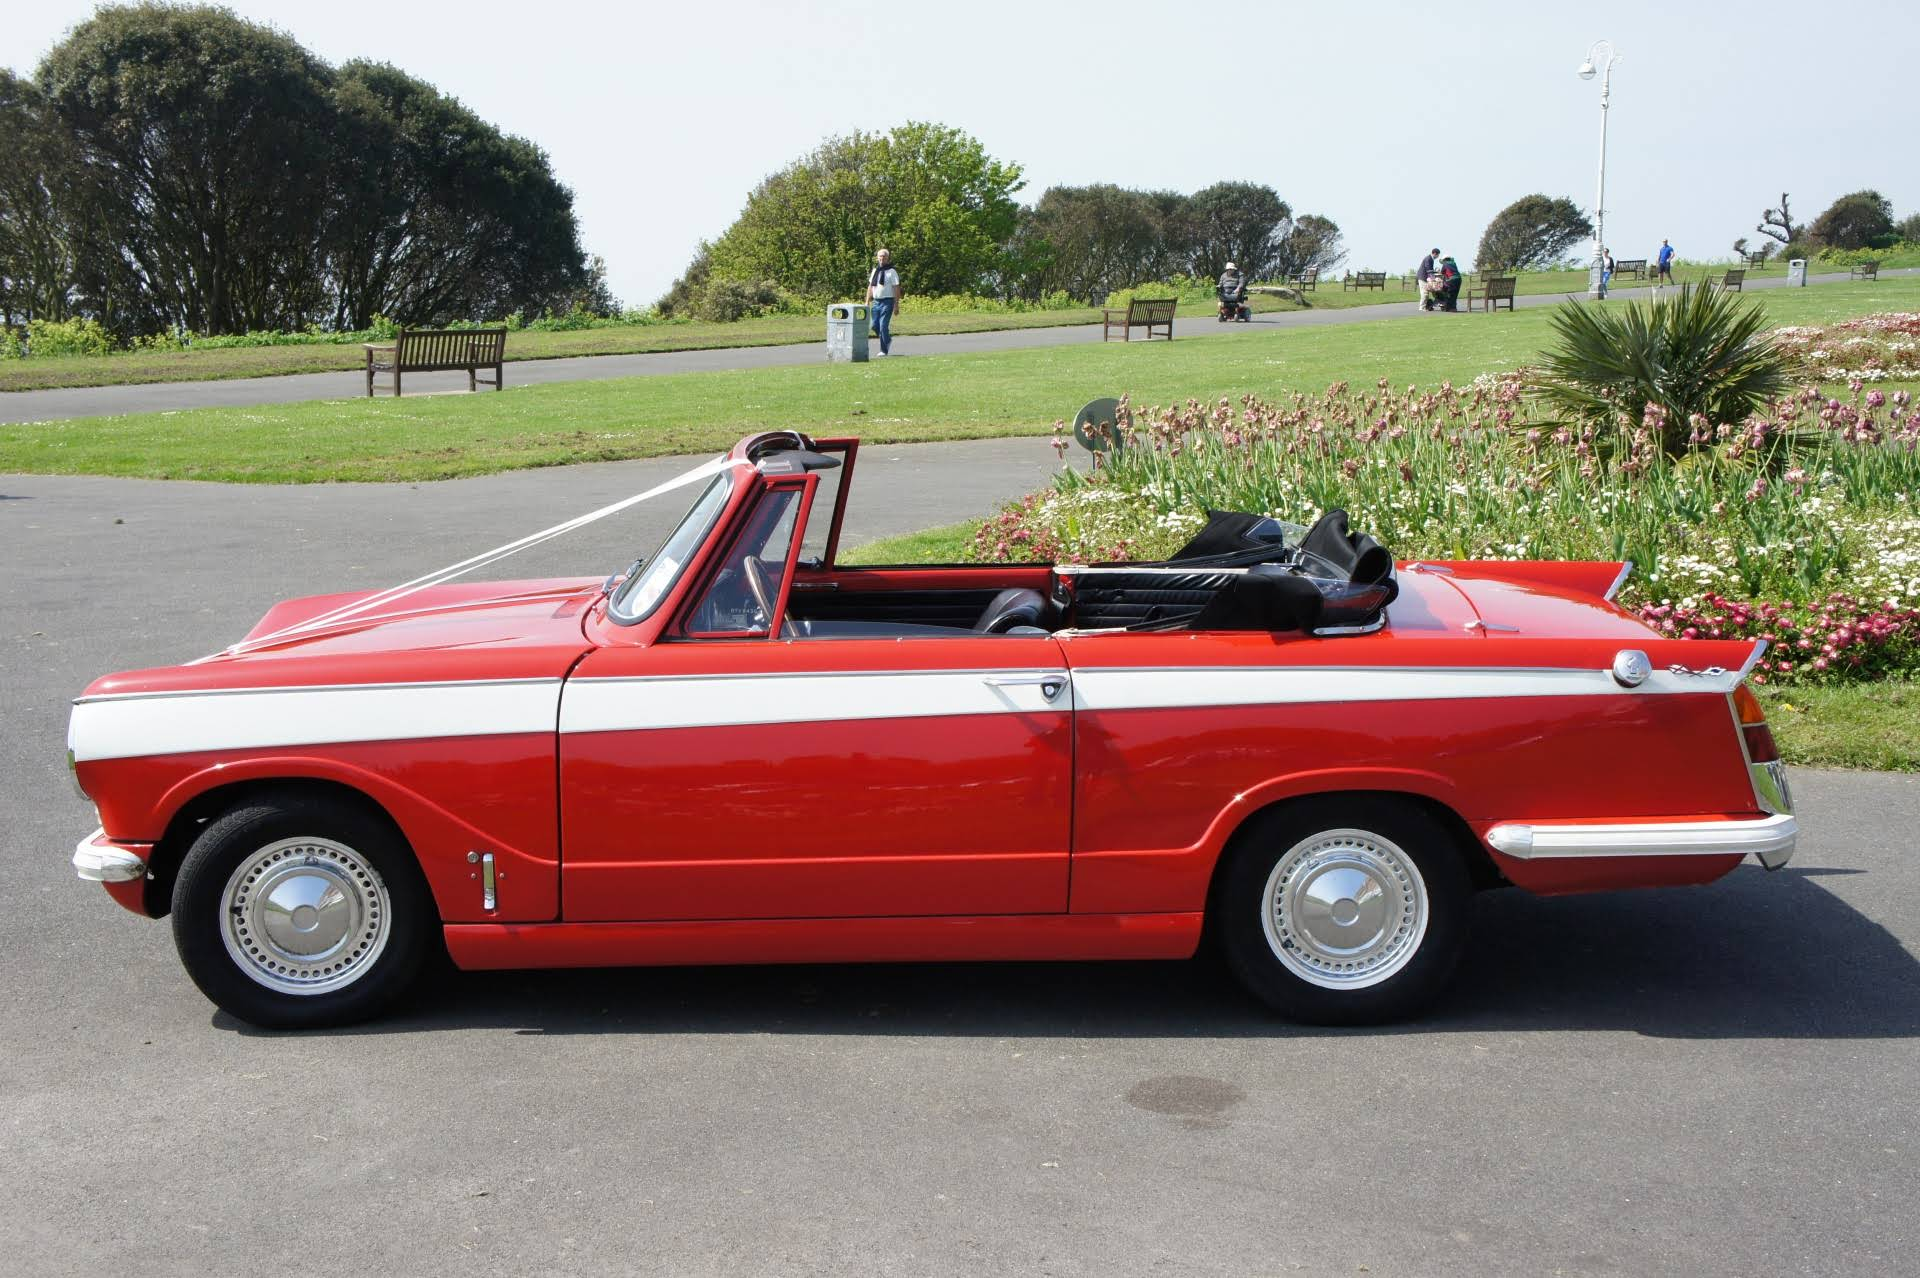 Triumph Herald Convertible For Hire In Folkestone Bookaclassic